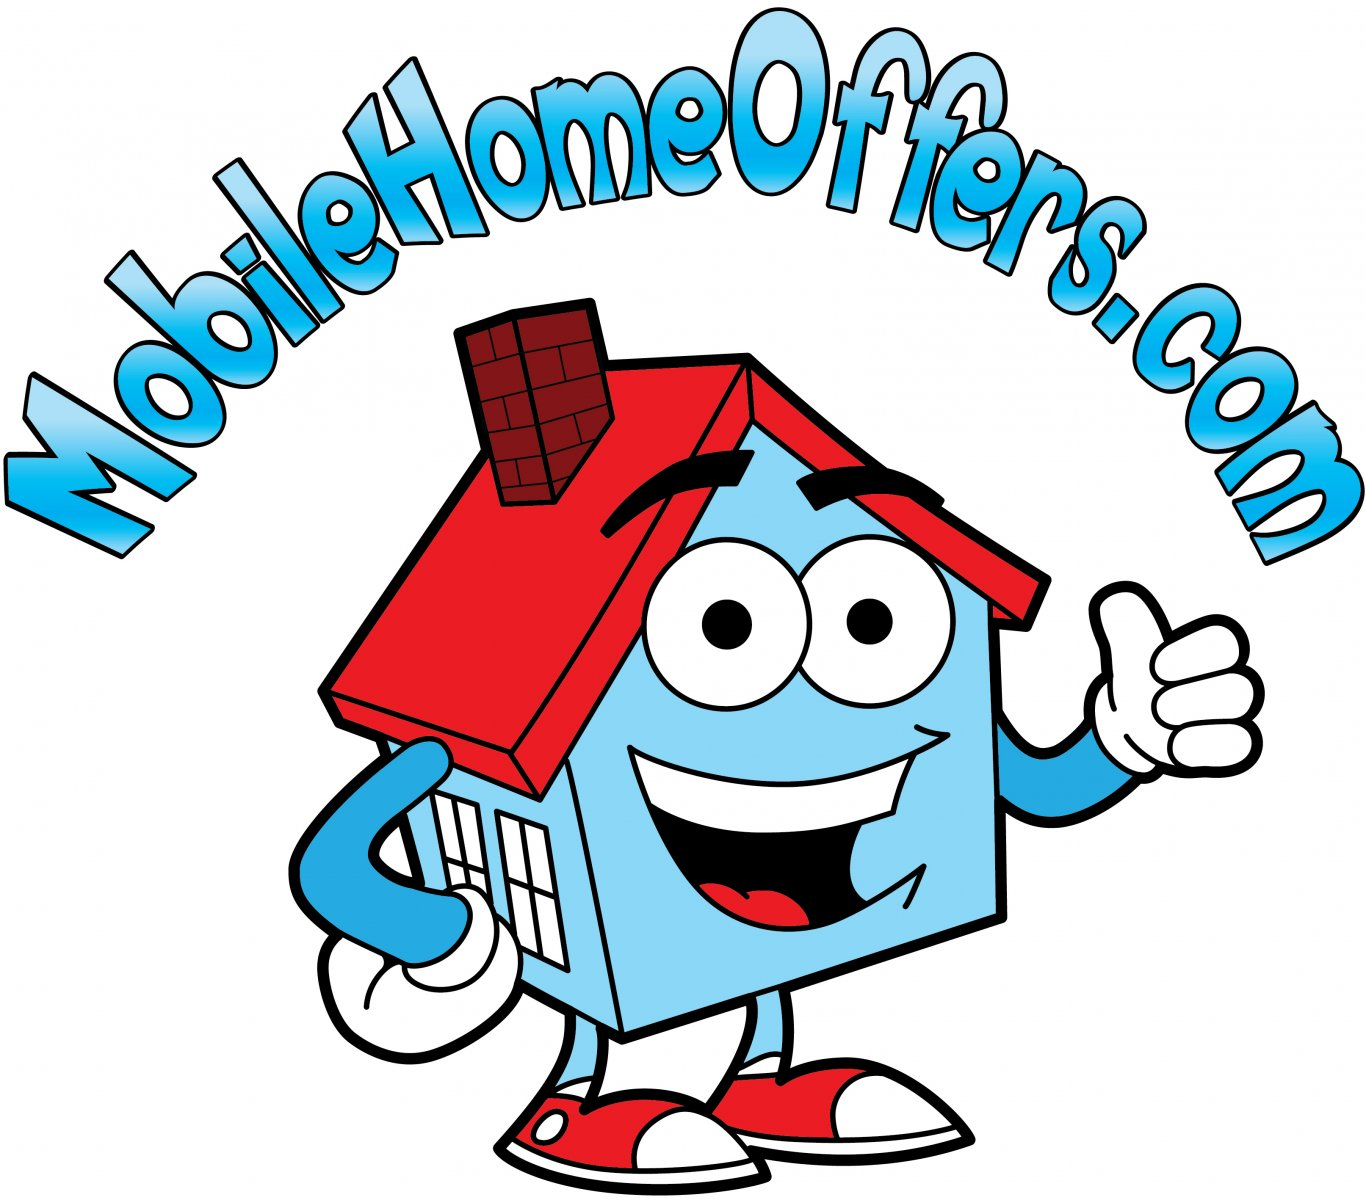 Sell My mobile home Fast Dallas Fort Worth - We buy mobile ... Cartoon Mobile Home For Sale By Owner on heavy equipment by owner, used mobile home sale owner, mobile home parks sale owner, apartments for rent by owner, mobile homes for rent,